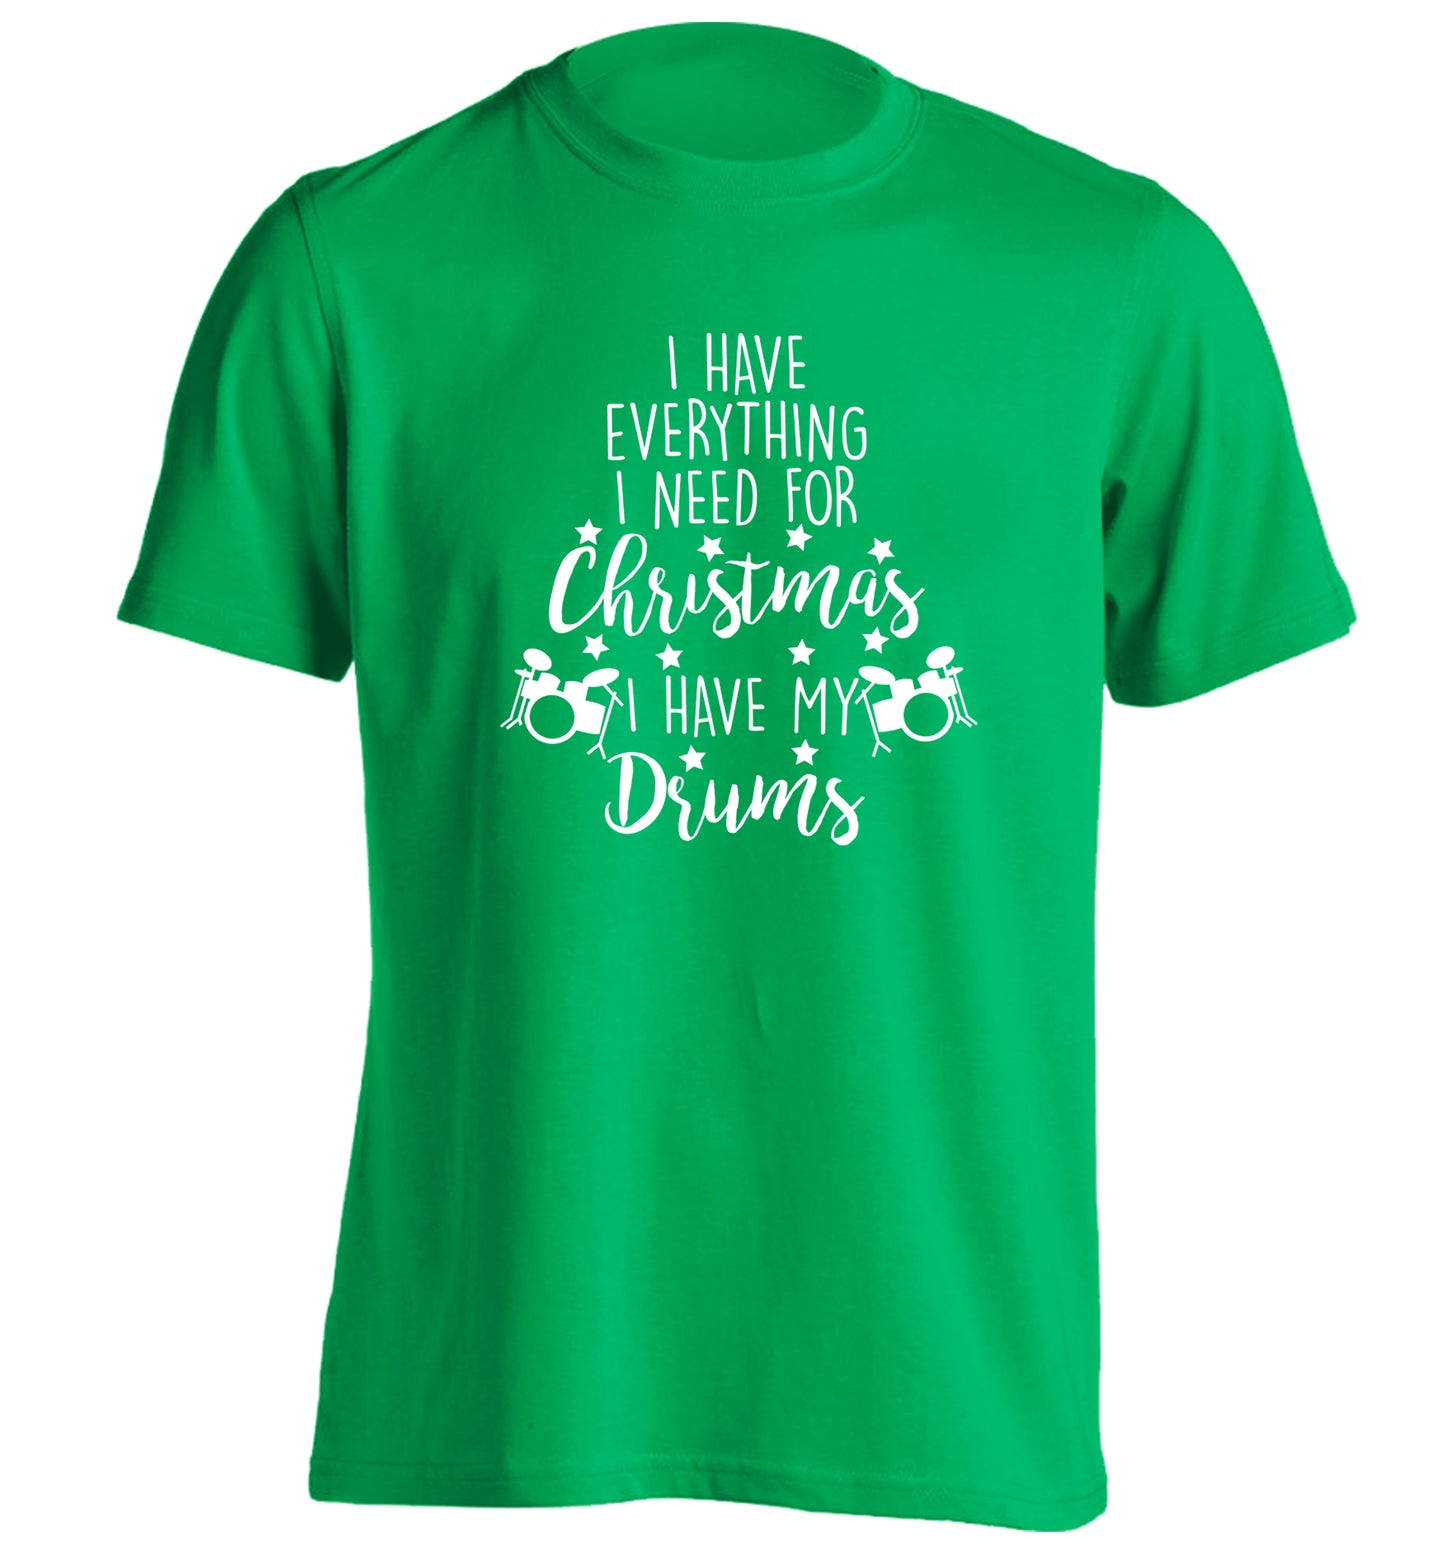 I have everything I need for Christmas I have my drums! adults unisex green Tshirt 2XL